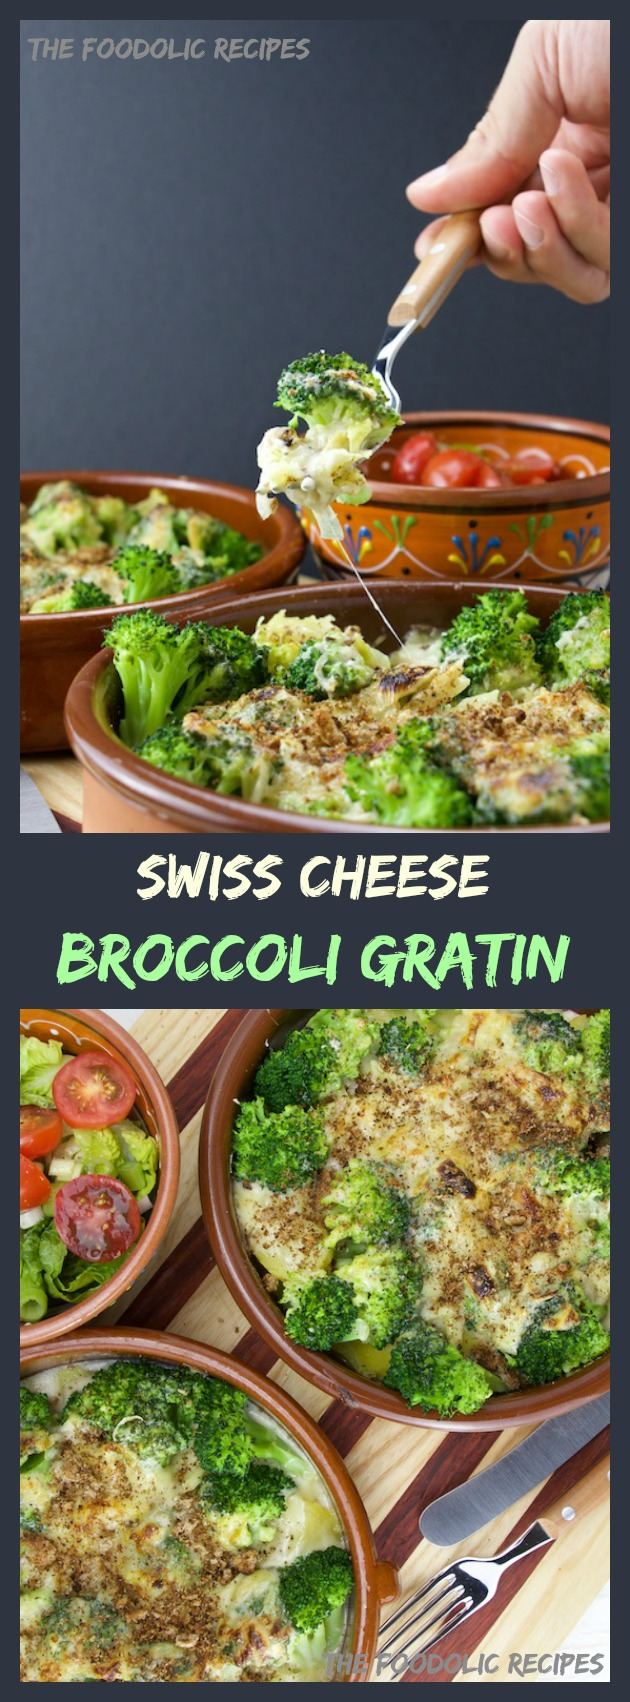 broccoligratin